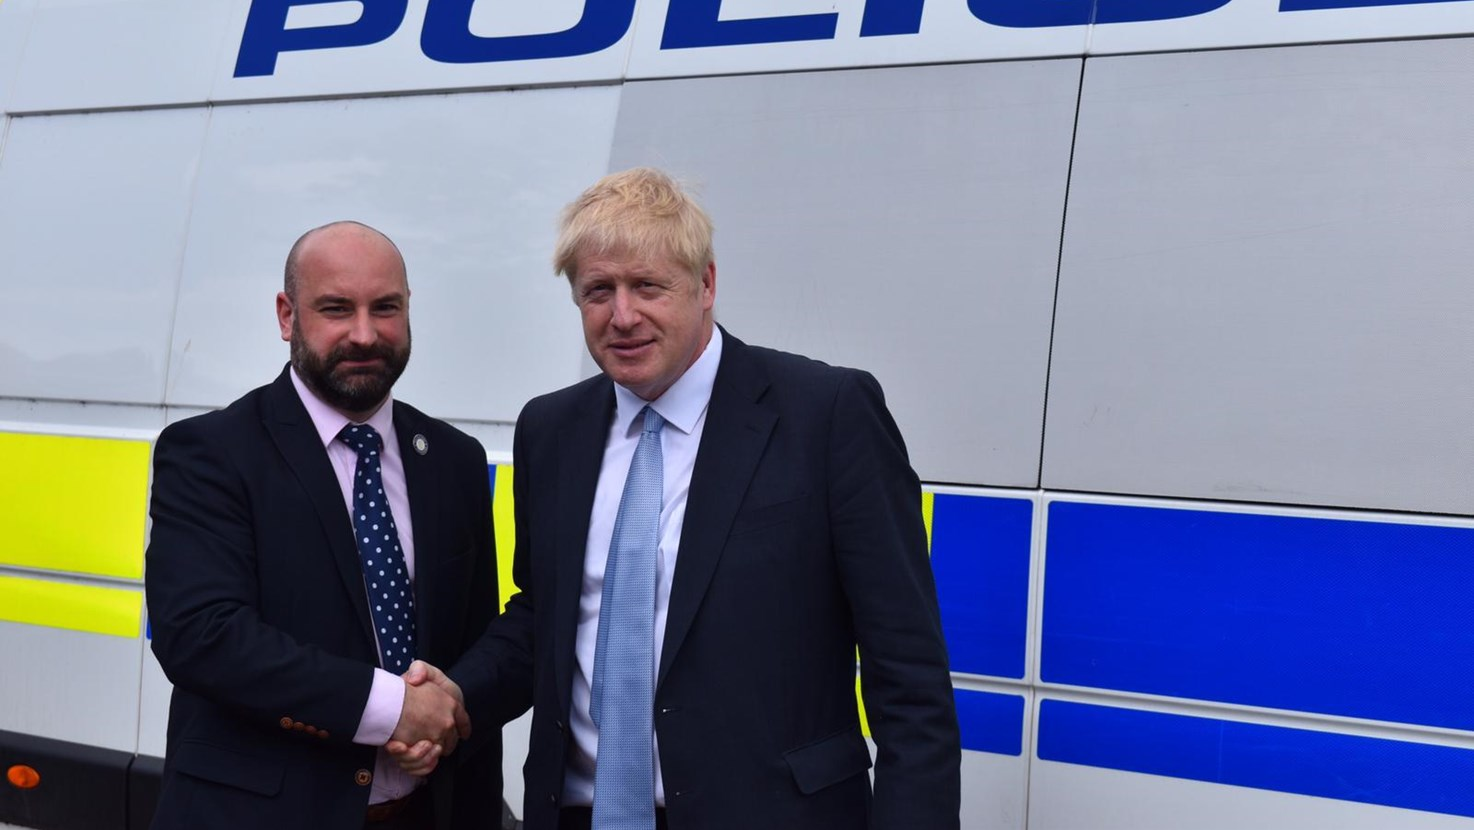 PCC Marc Jones is lobbying both candidates in the fight for Prime Minister